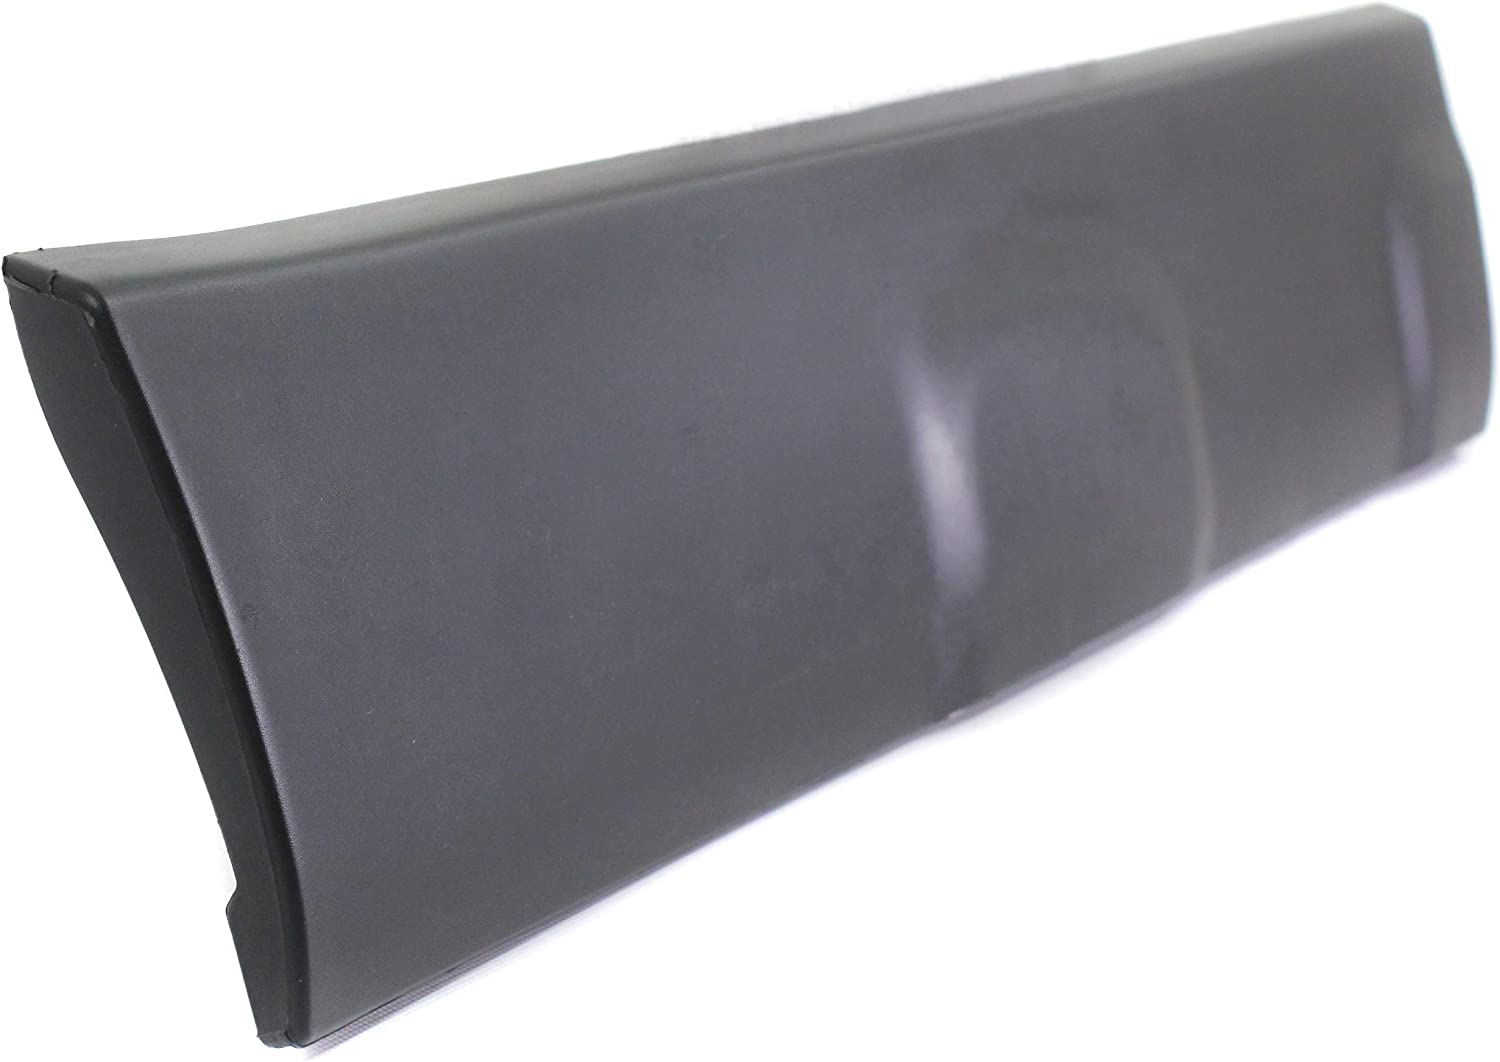 Rear Door Molding and Beltlines Compatible with HONDA CR-V 2007-2011 RH Assembly Garnish Textured Black with Clip Japan//Mexico//USA Built